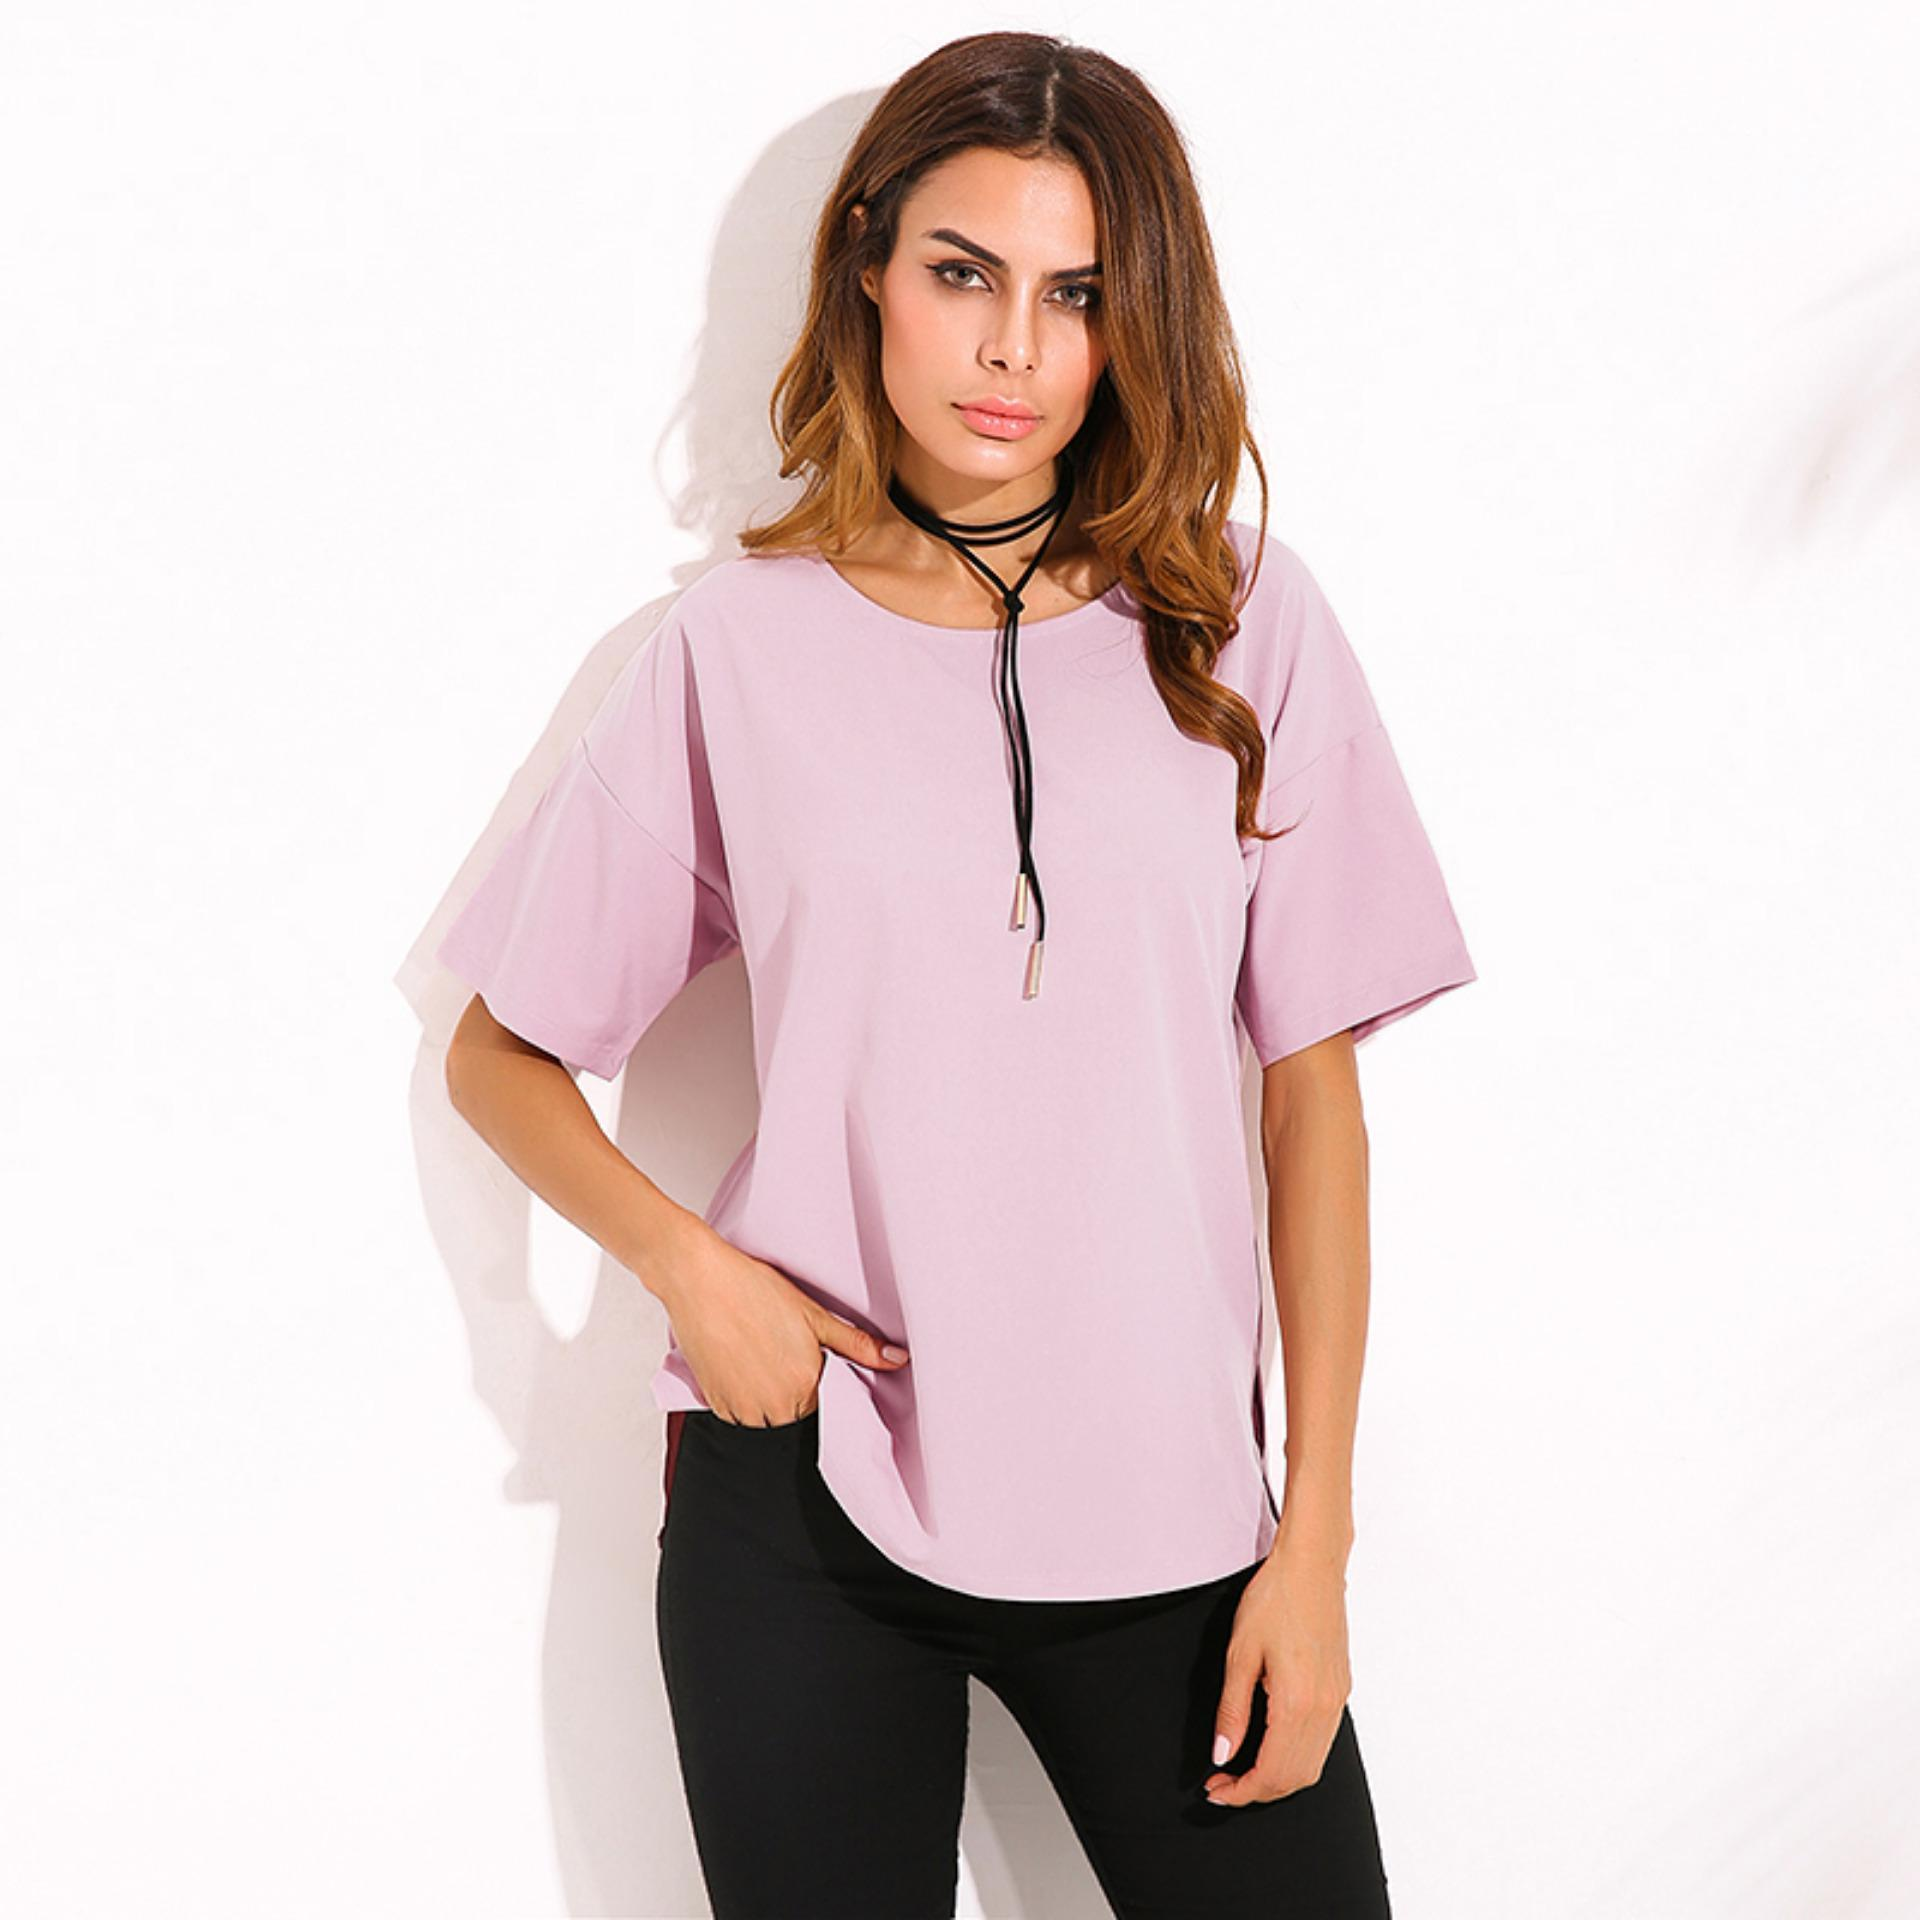 fe21996b03931 Product details of ZANZEA Women Blouses 2018 Summer Shirts O Neck Short  Sleeve Blusas Casual Loose Oversized Tees Tops Plus Size S-5XL Purple Pink